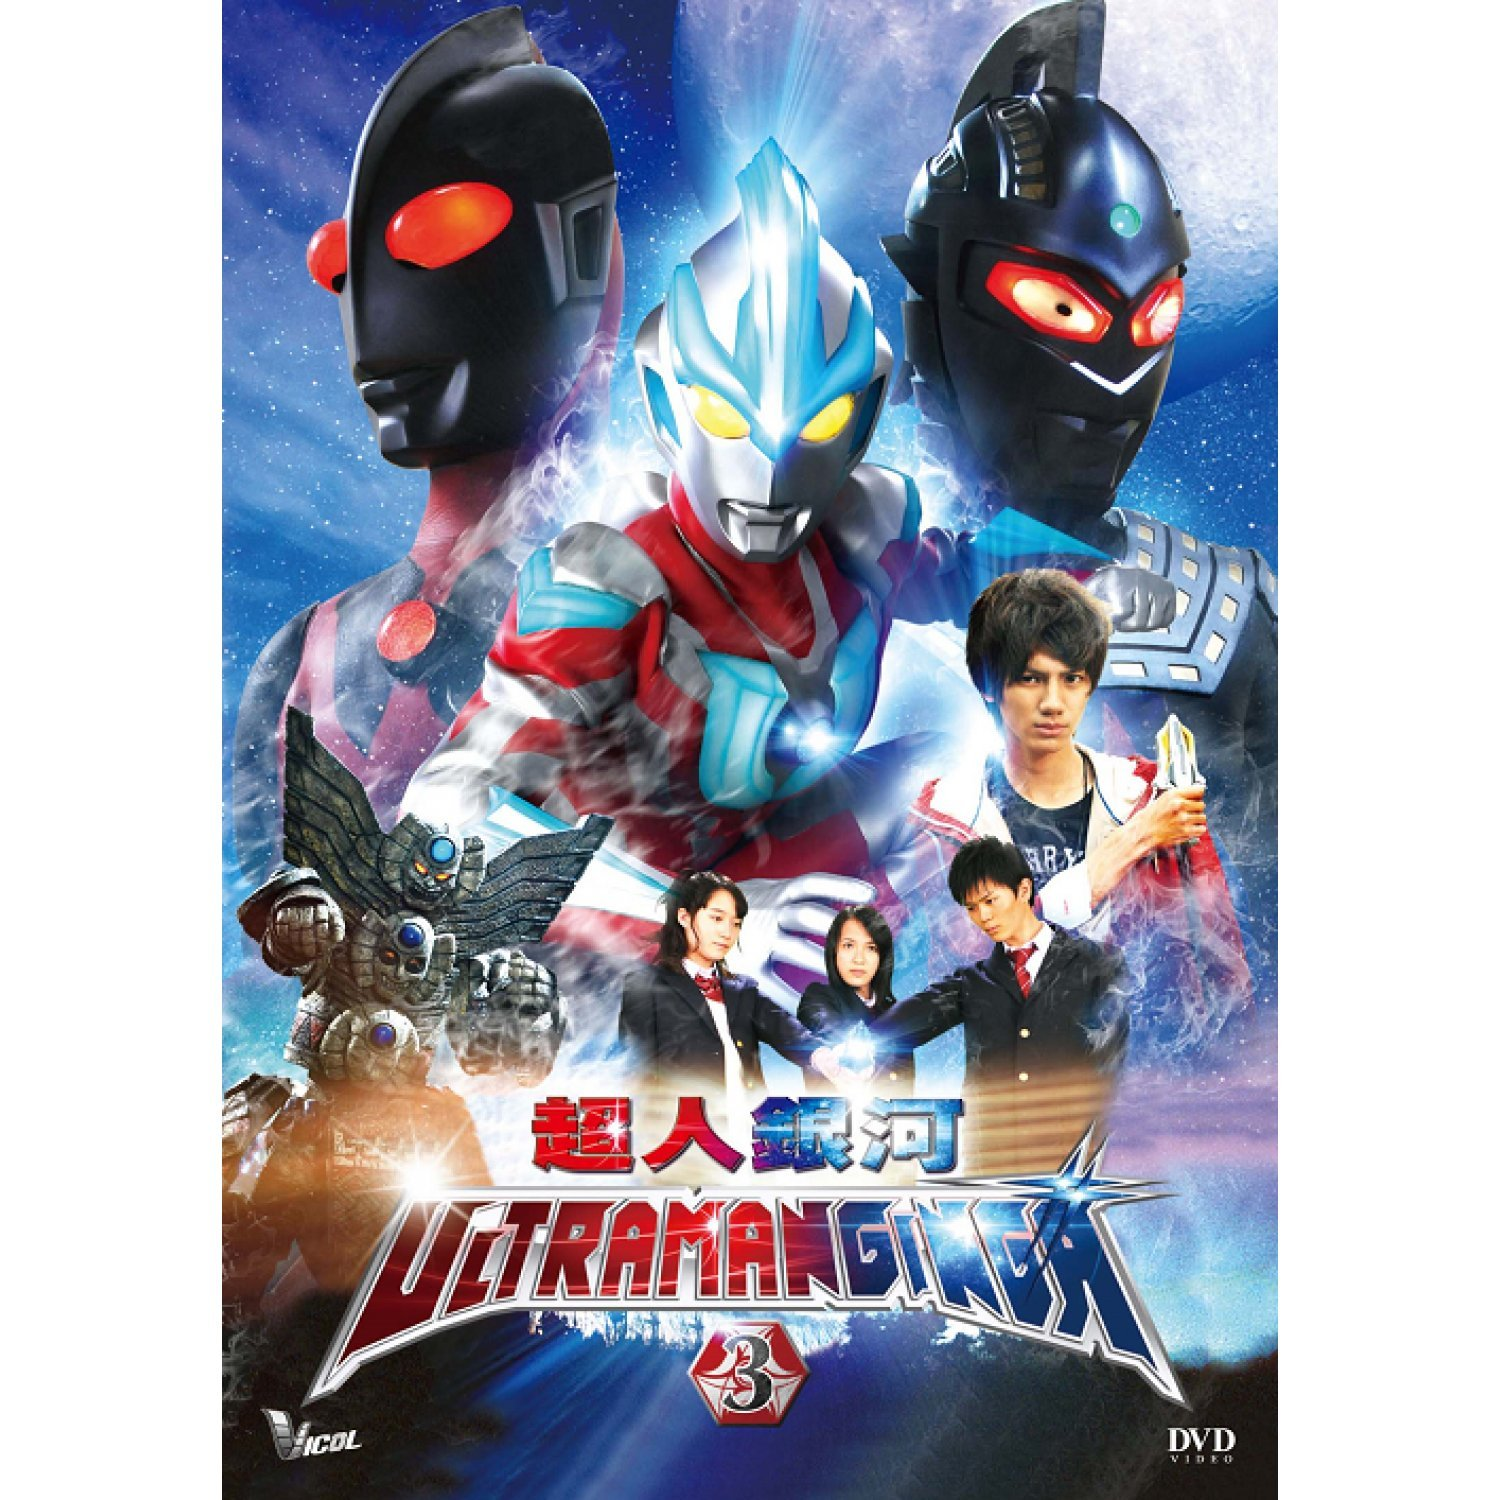 ultraman ginga hd